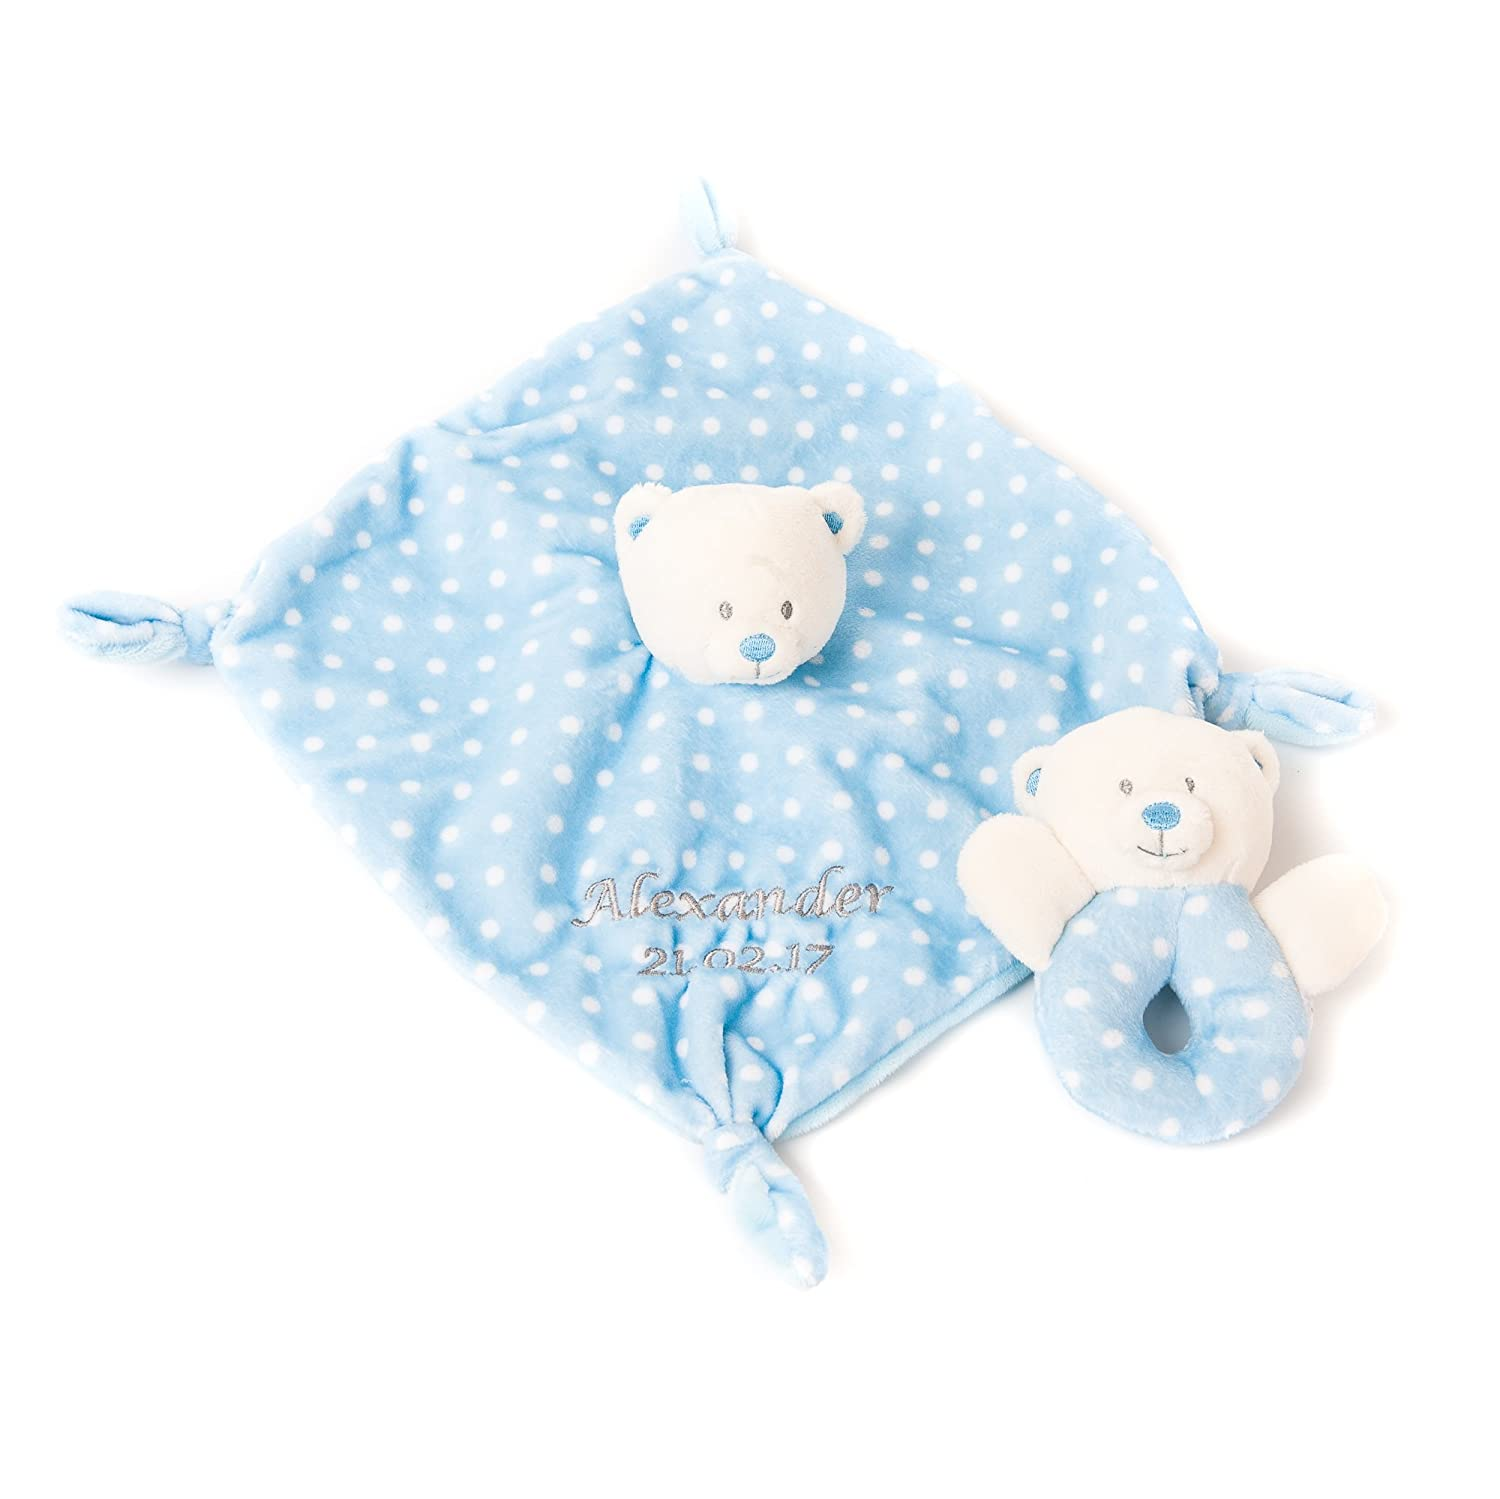 Personalised Embroidered Baby Comforter and Ring Rattle Set with name Newborn Blue Gift Gift Hoolaroo 9A710904F